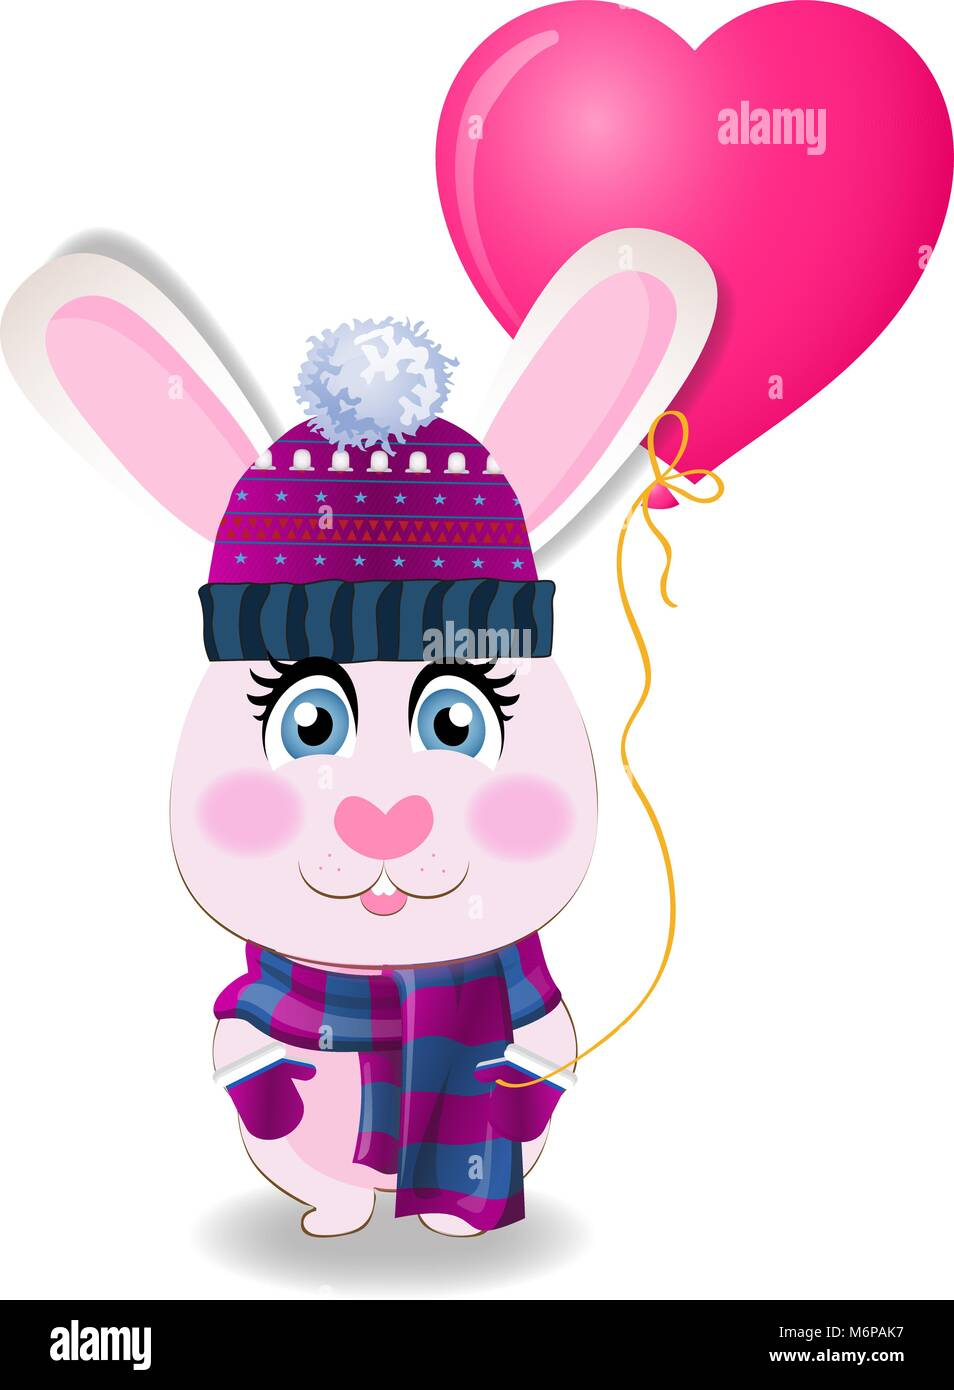 Cute pink baby rabbit in knitted hat, scarf and mittens holding rose heart shaped helium balloon isolated on white - Stock Image